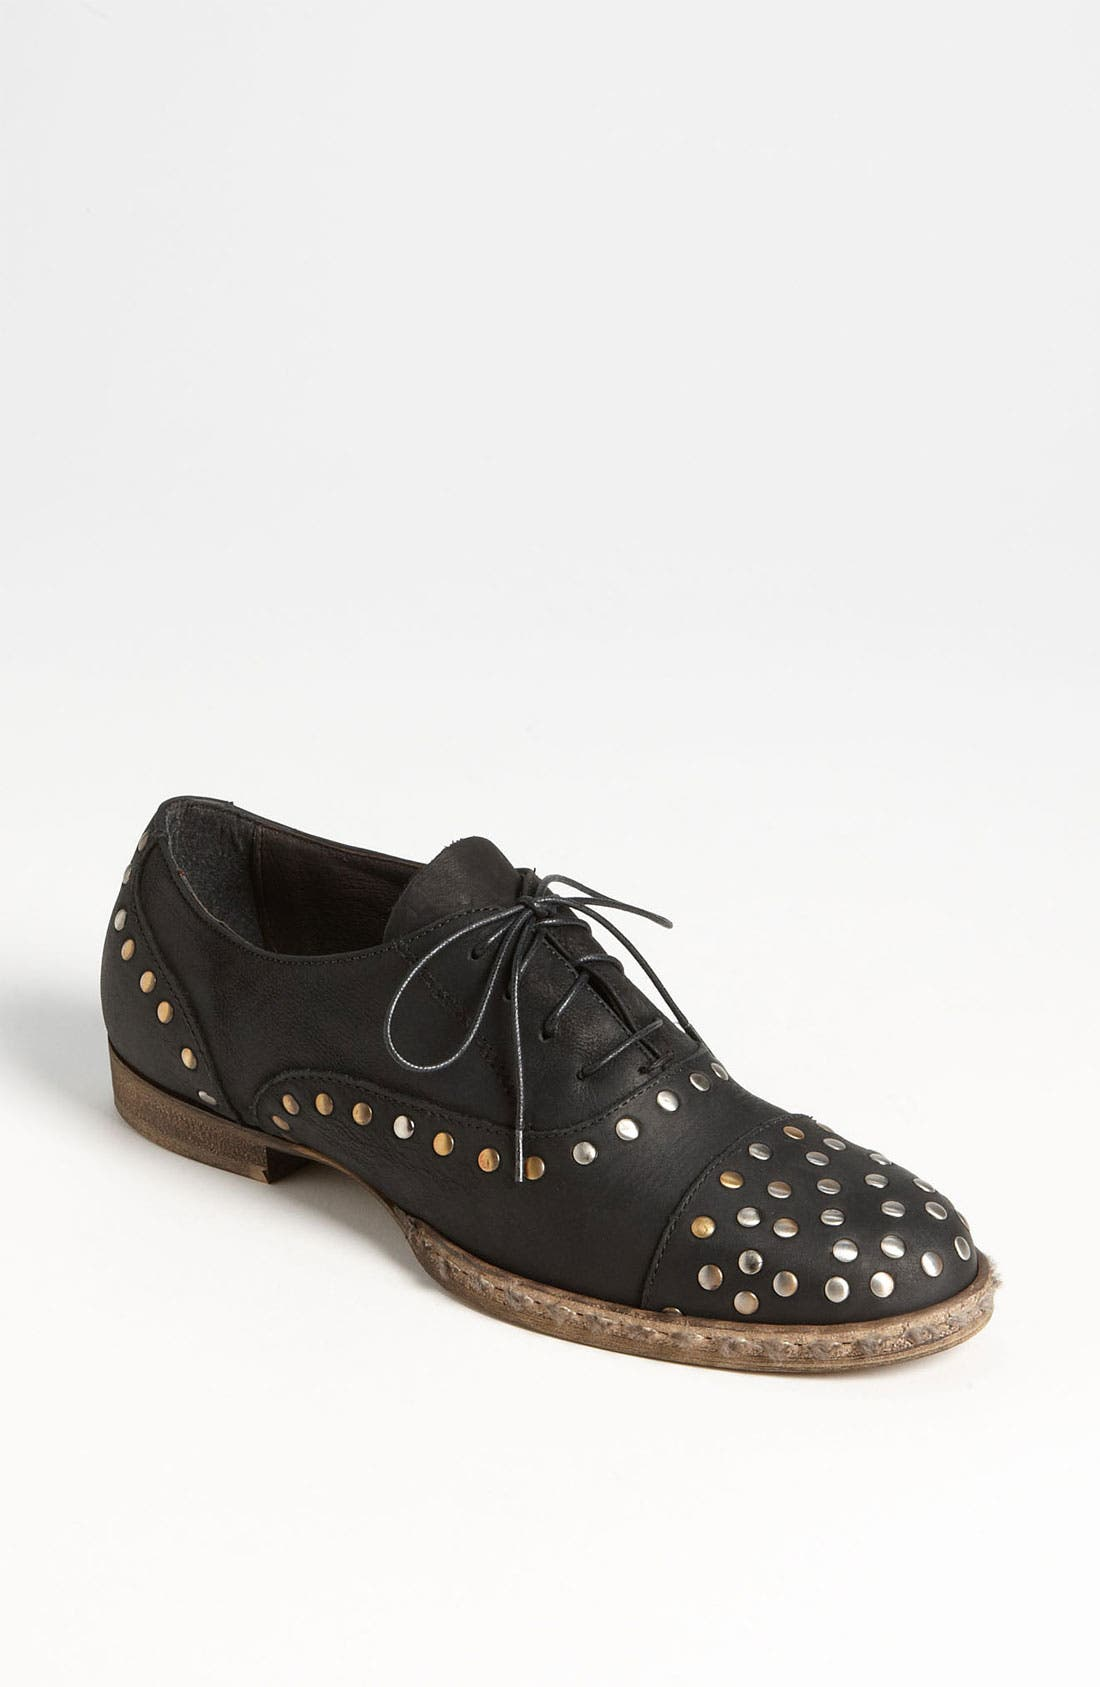 Alternate Image 1 Selected - Mery Studded Lace-Up Oxford